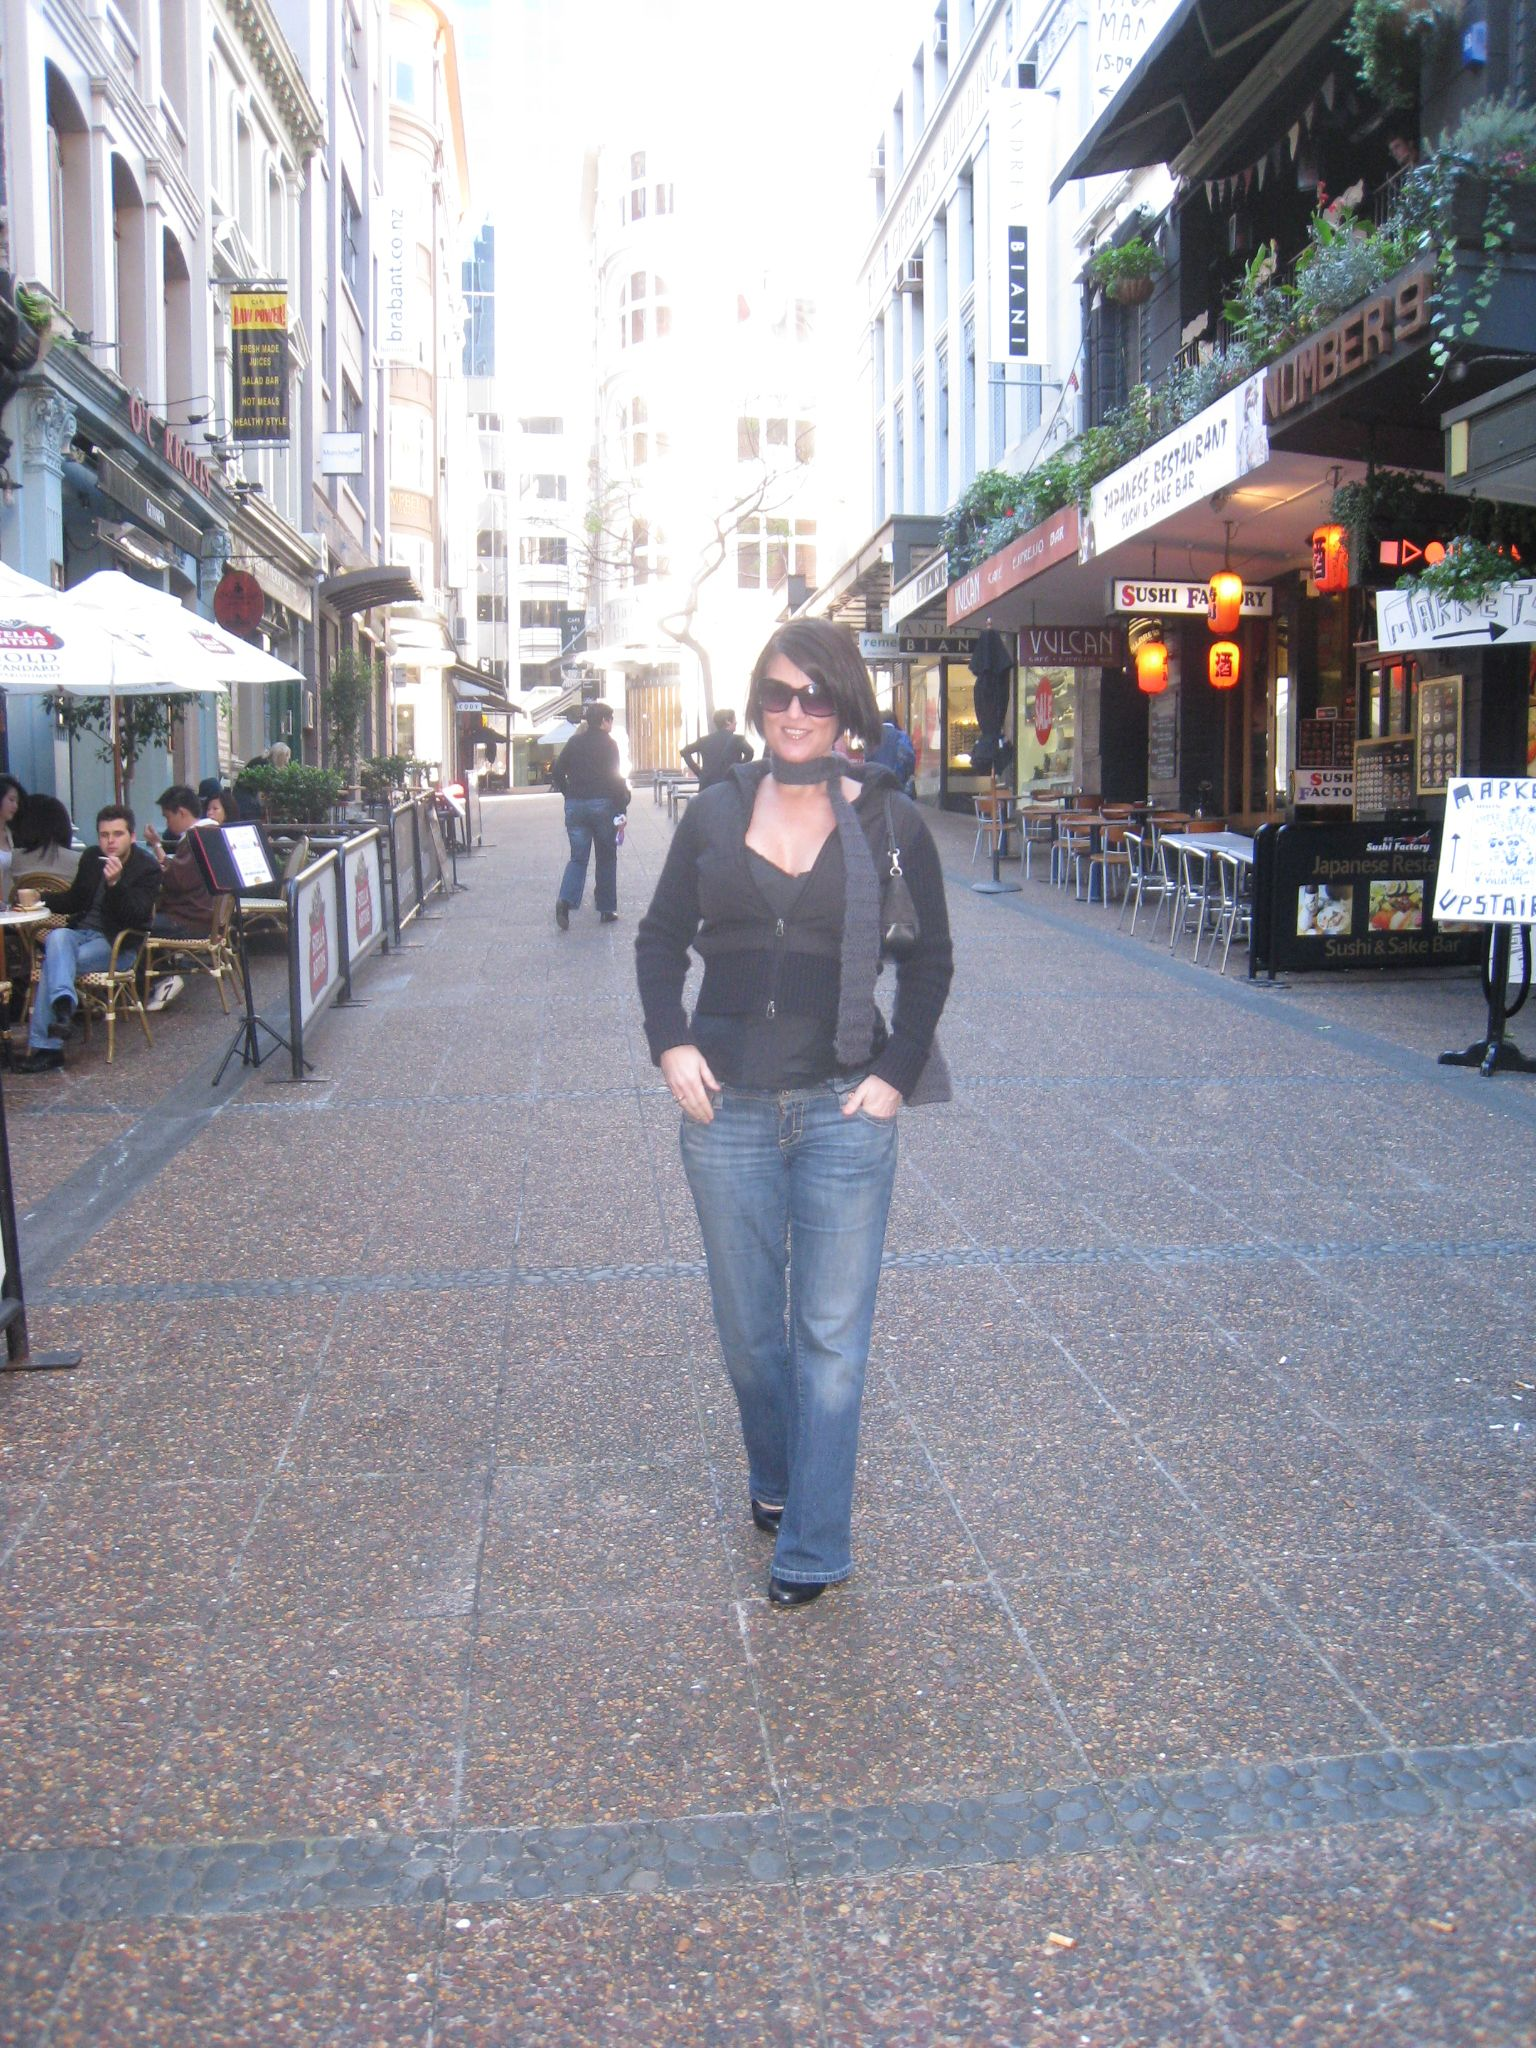 IN AUCKLAND, NEW ZEALAND-ON VULCAN LANE- ONE OF THE MOST FAMOUS SPOTS FOR SHOPPING & CELEBRATING